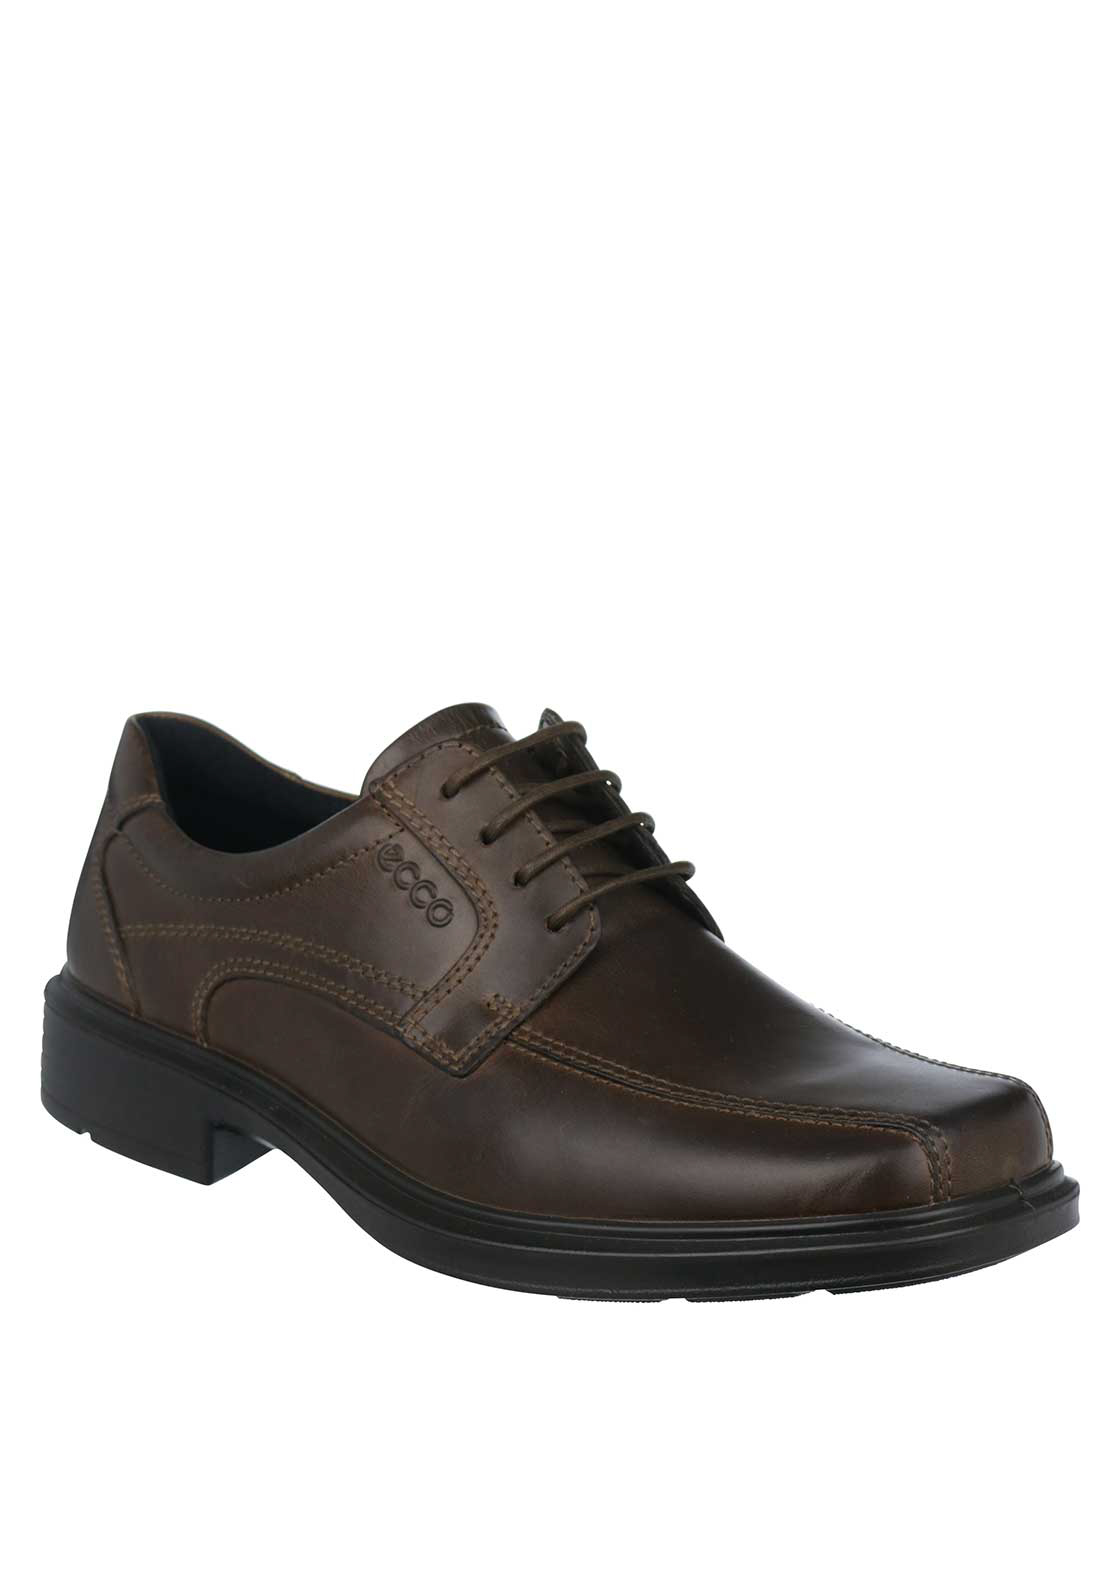 Ecco Mens Helsinki Lace Up Leather Shoe, Cocoa Brown